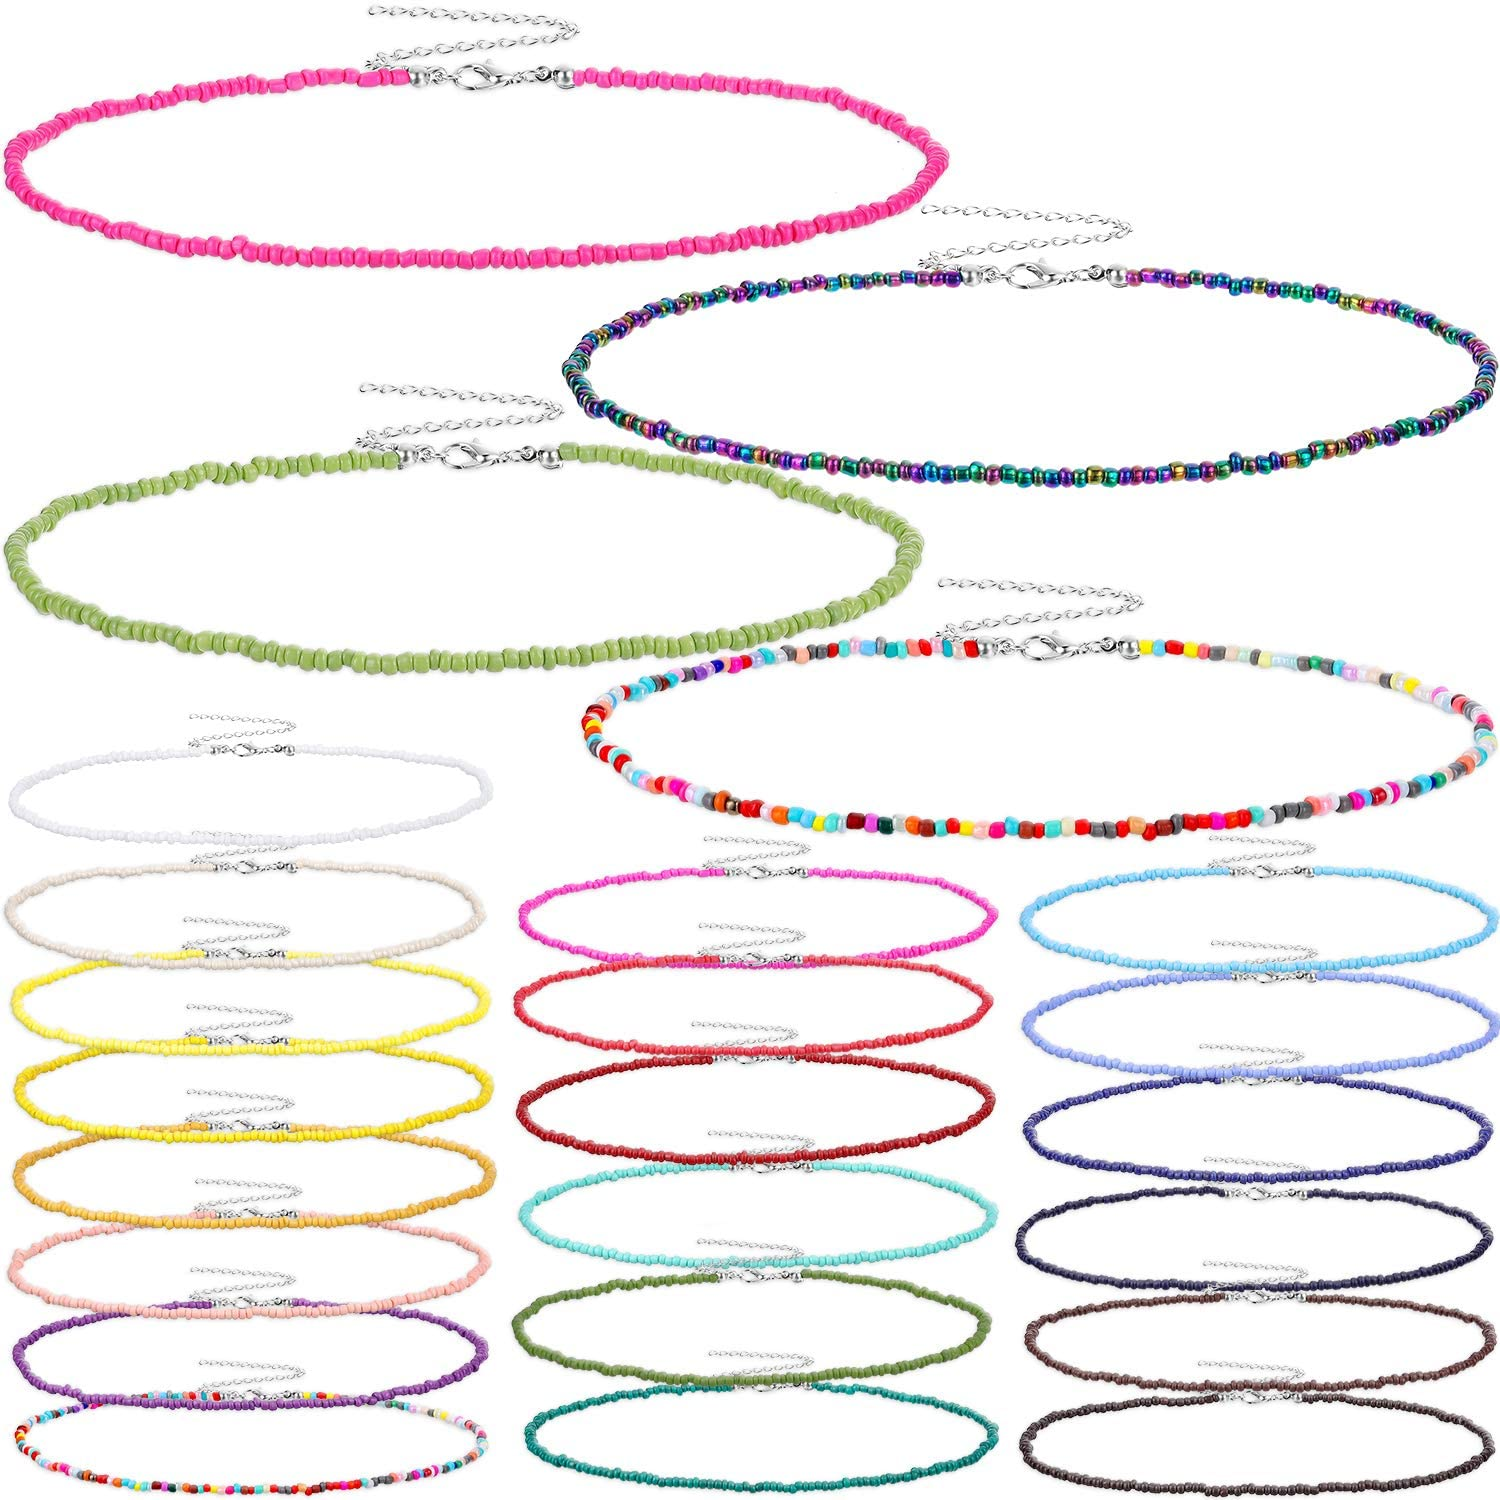 24 Pieces Seed Bead Choker Boho Beads Choker Necklace Colorful Bead Necklace for Women Girls